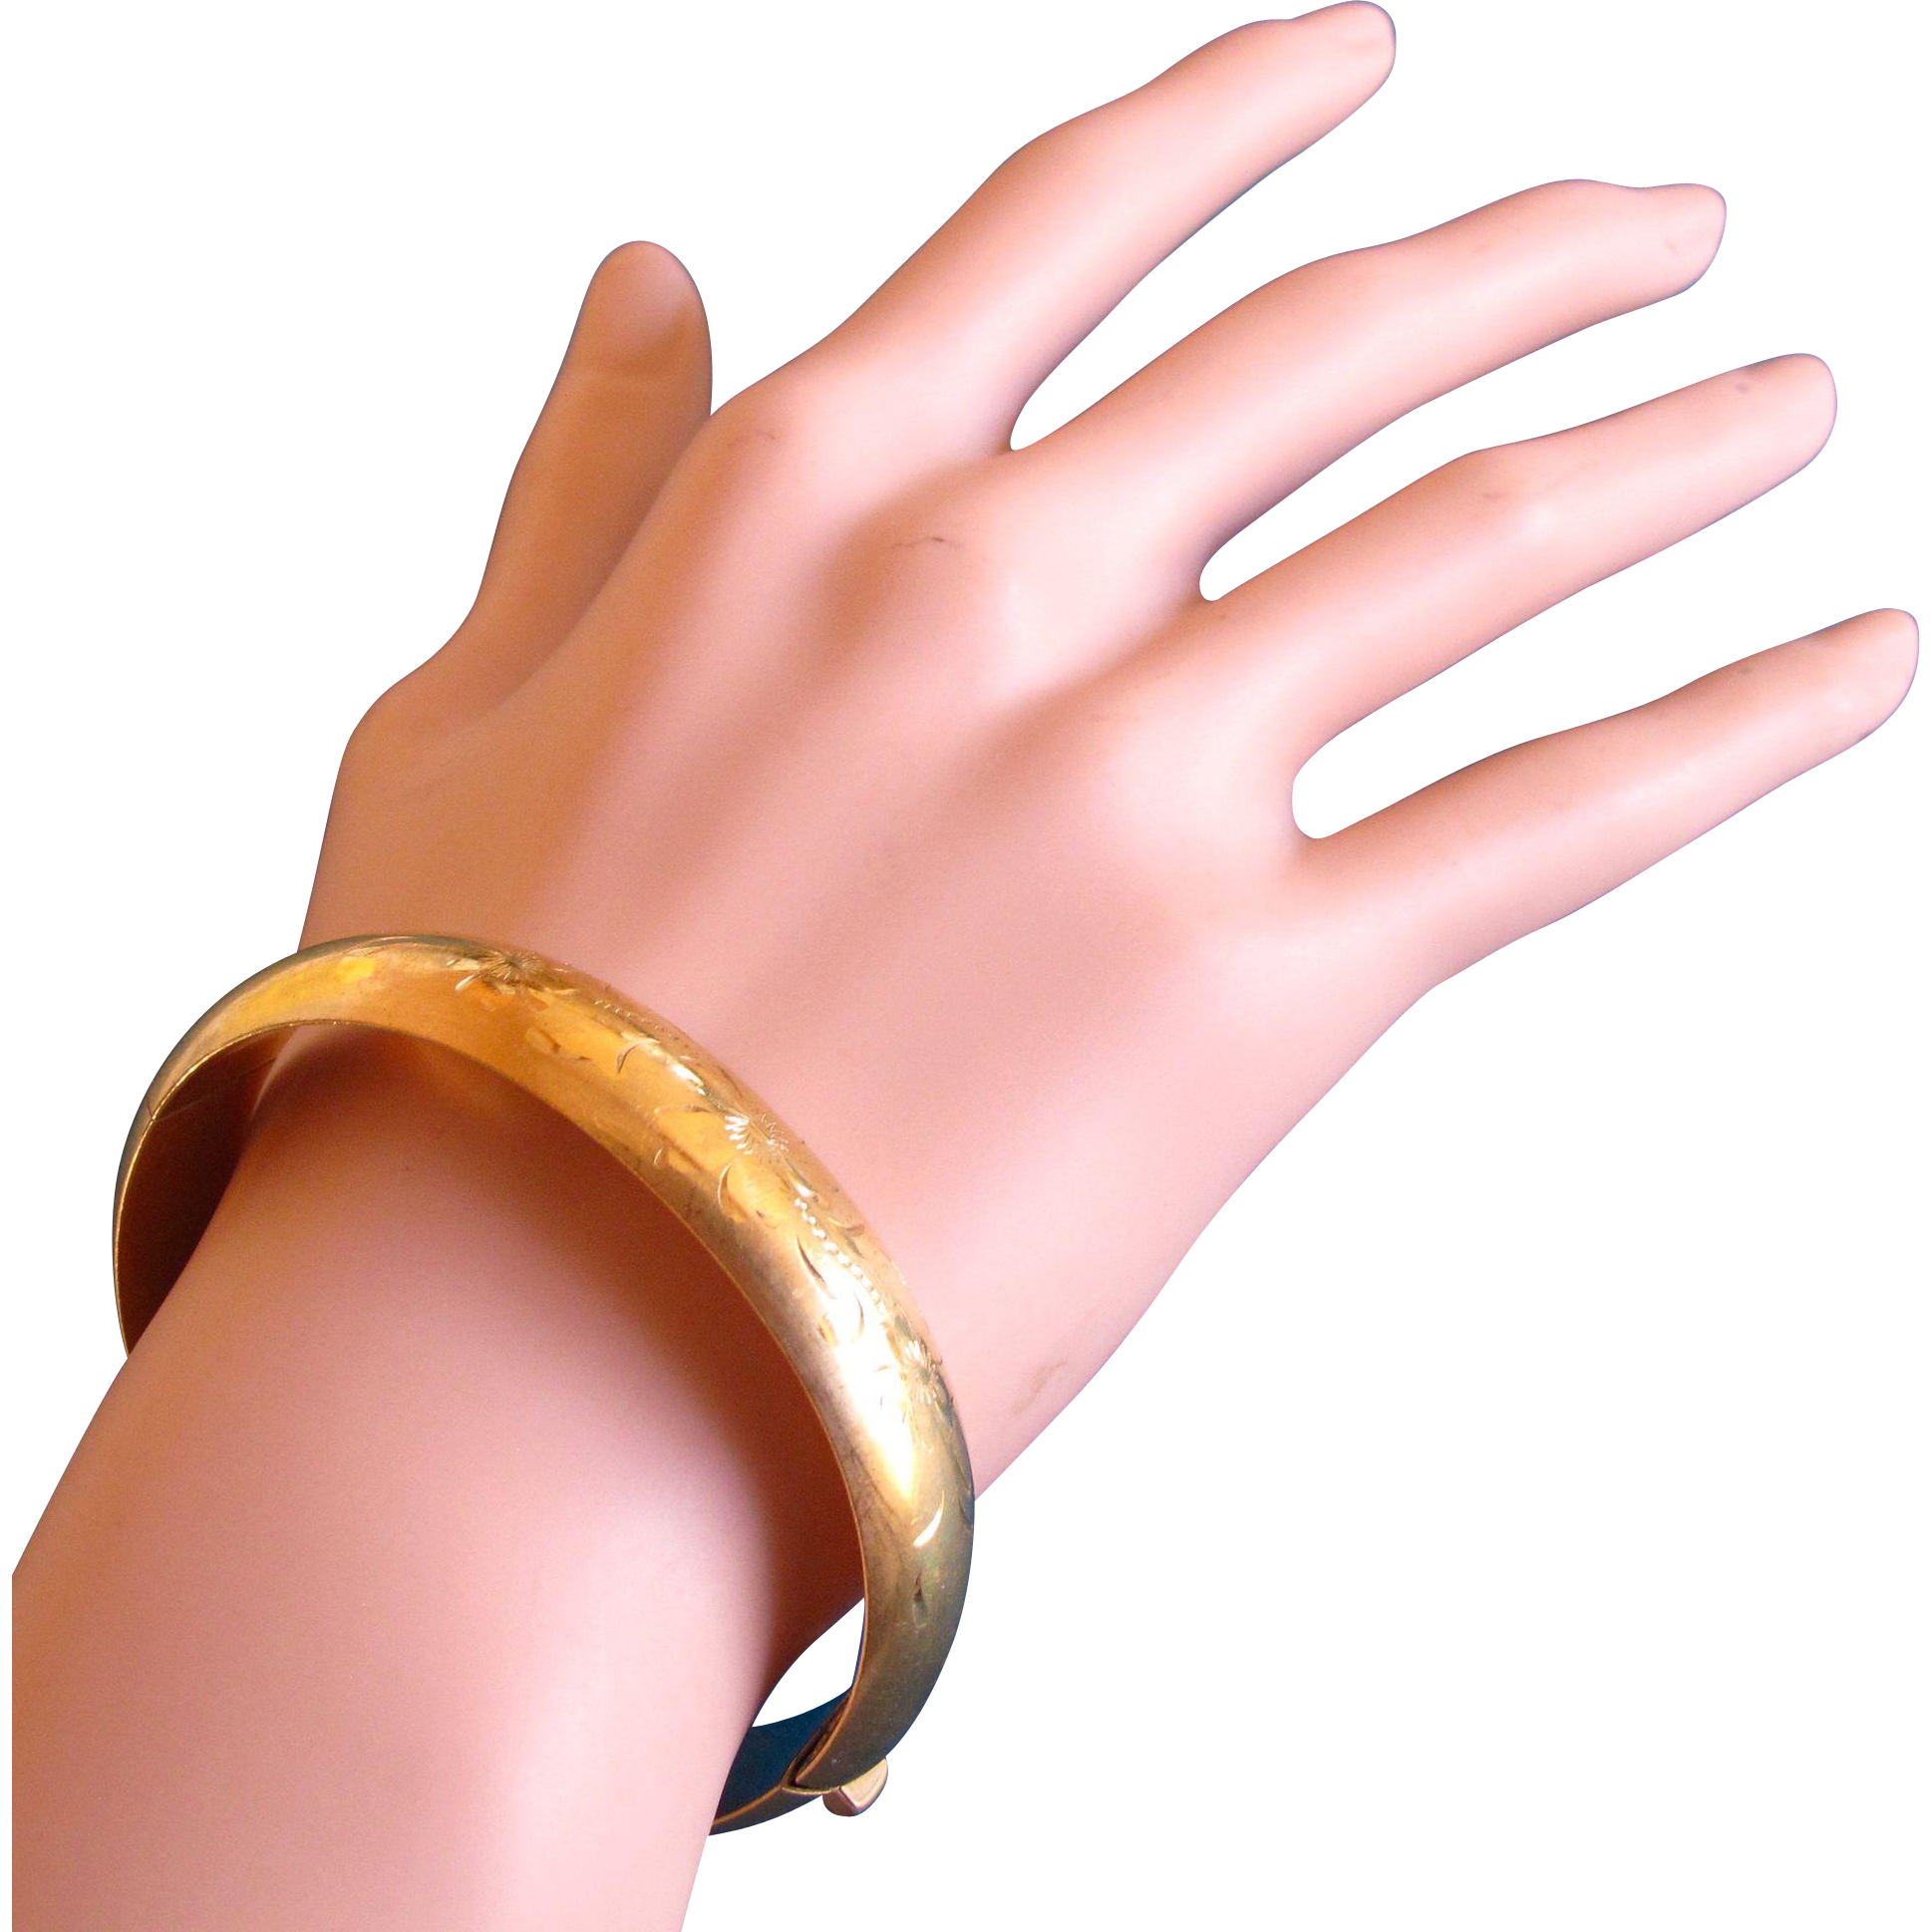 save bangle lyst in gold rose designer effy fullscreen view bracelet jewelry metallic bangles